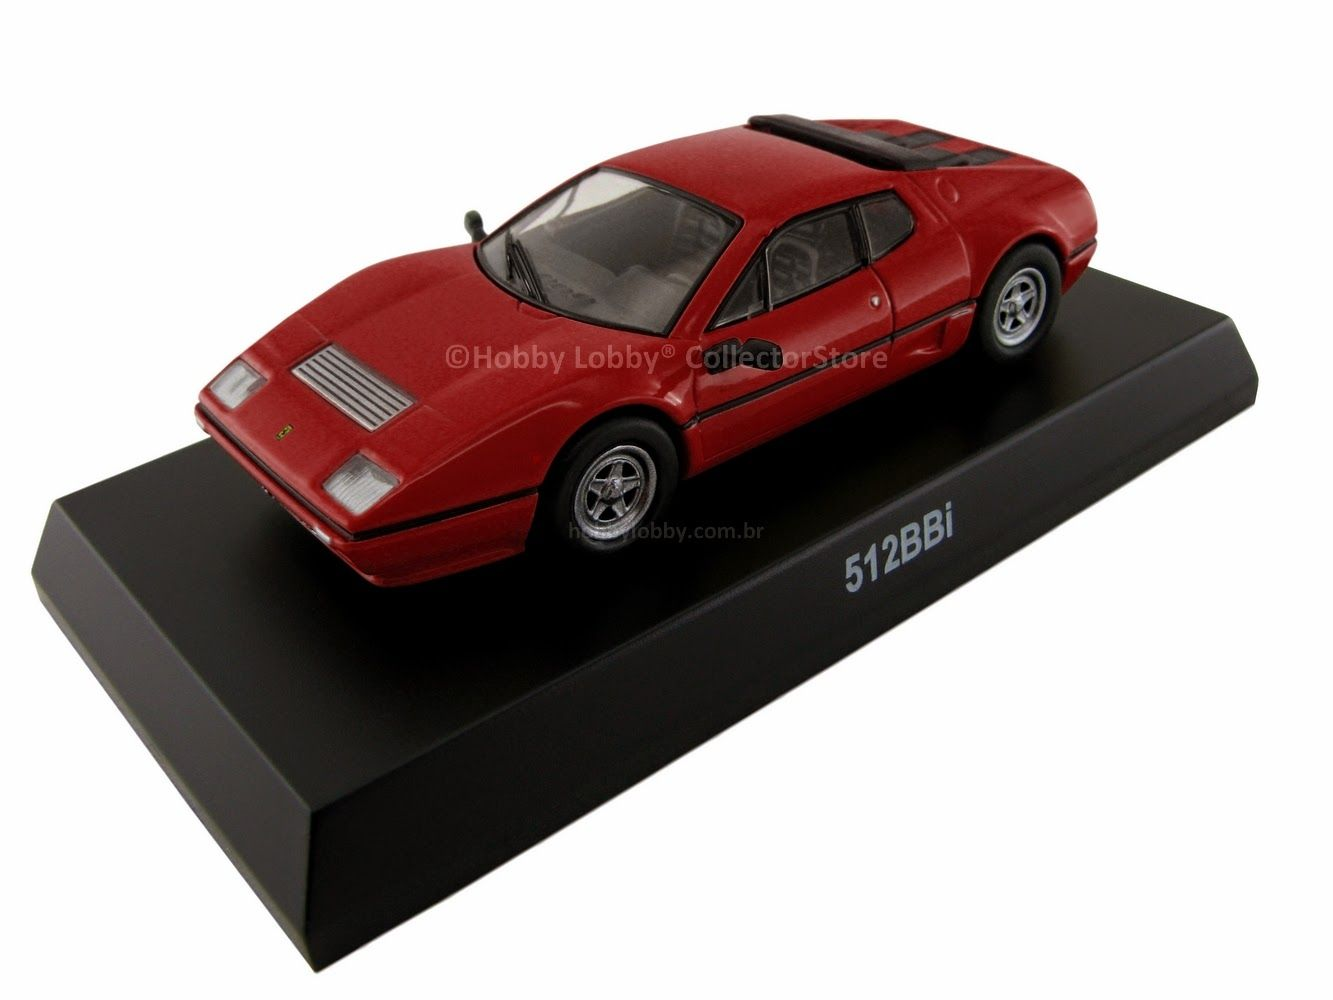 KYOSHO - FERRARI MINICAR COLLECTION Modelo: FERRARI 512 BBi Série: Ferrari Minicar Collection VI Escala: 1:64